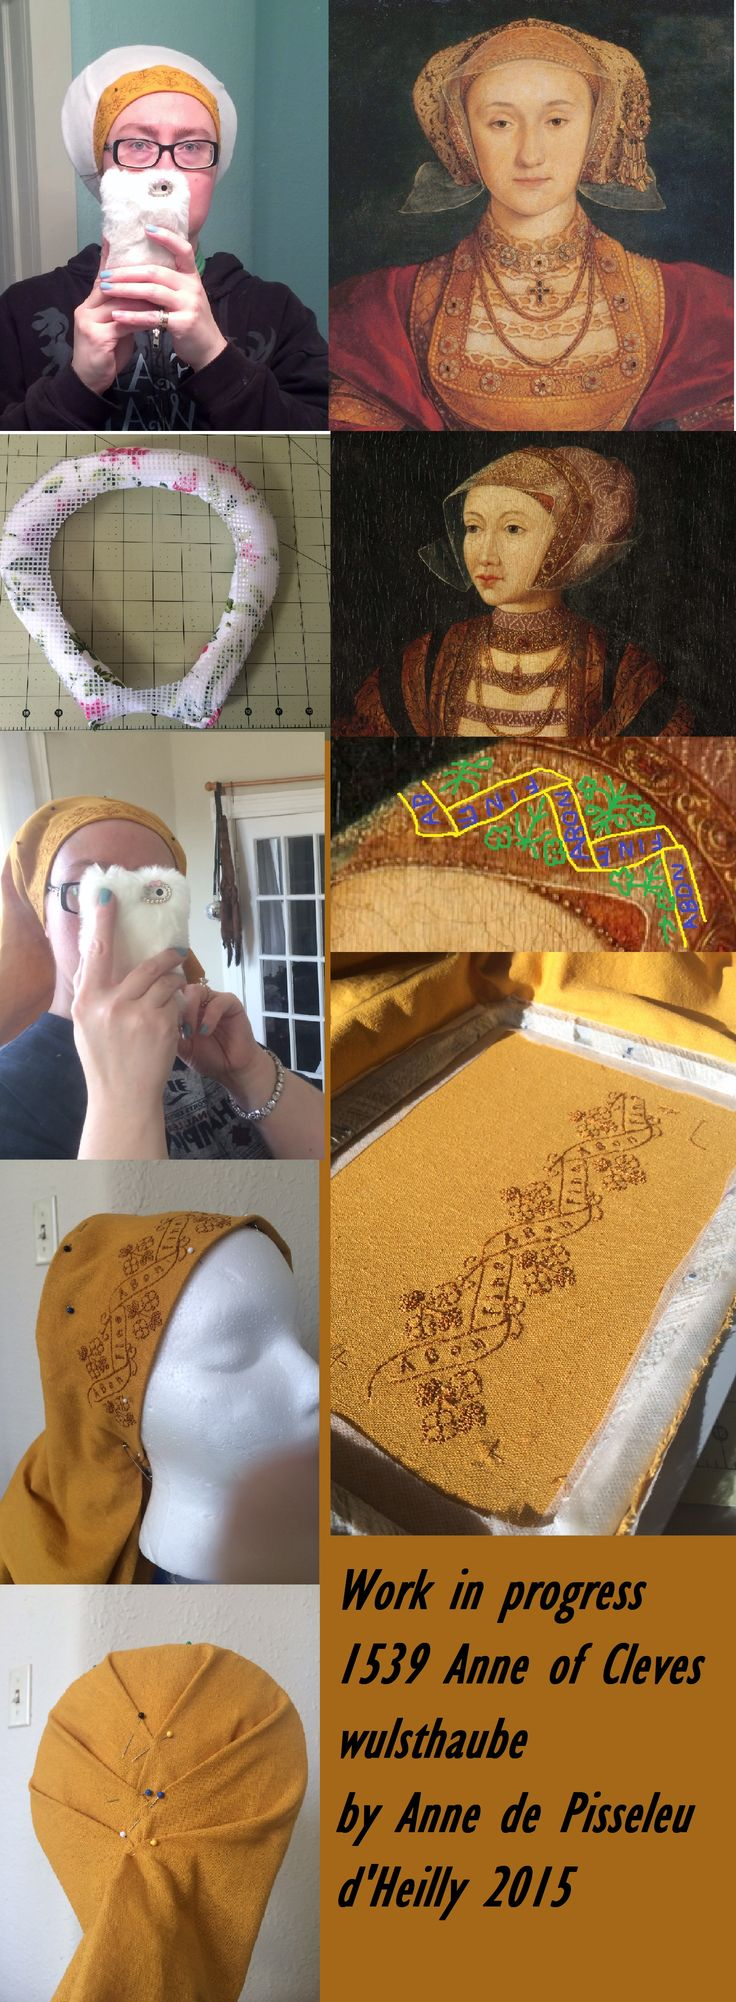 WIP 1539 Anne of Cleves wulsthaube recreated by Anne de Pisseleu d'Heilly Renaissance Inspired by Katafalk